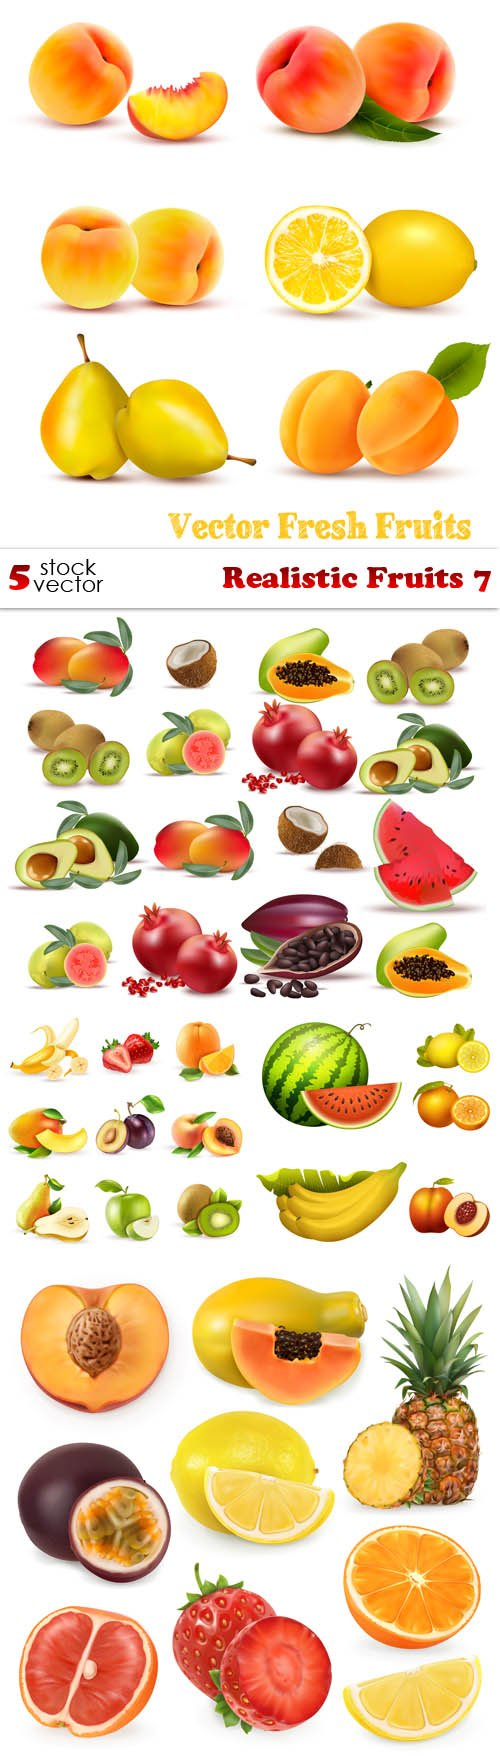 Vectors - Realistic Fruits 7